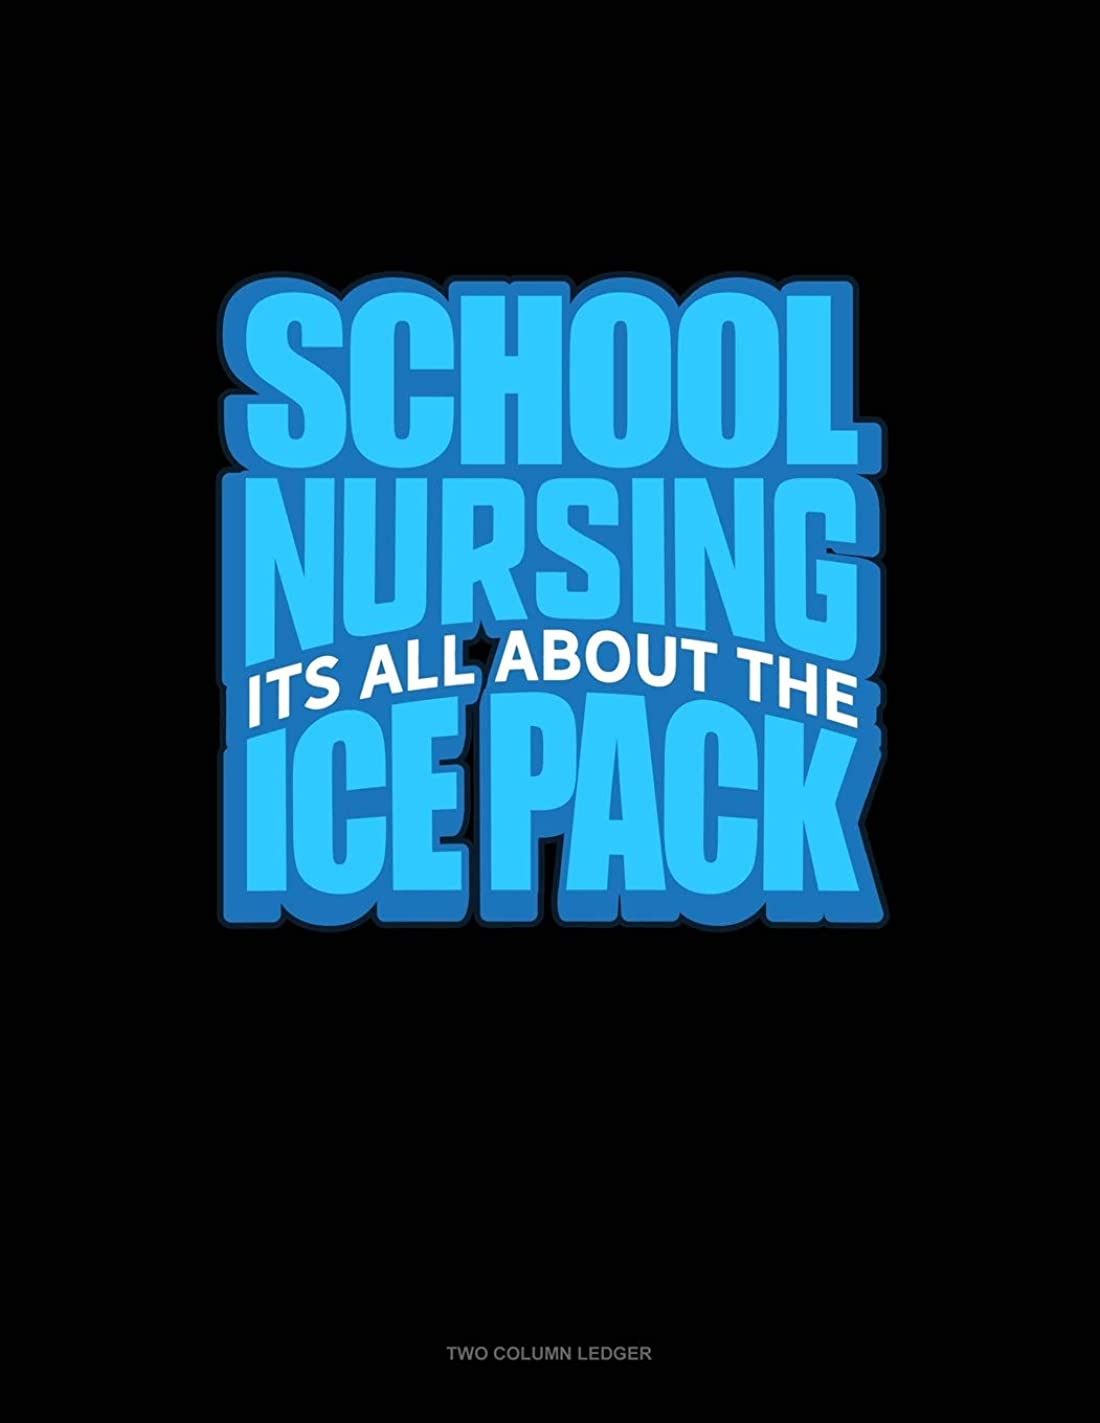 羊飼い唯物論後悔School Nursing It's All About The Ice Pack: Two Column Ledger